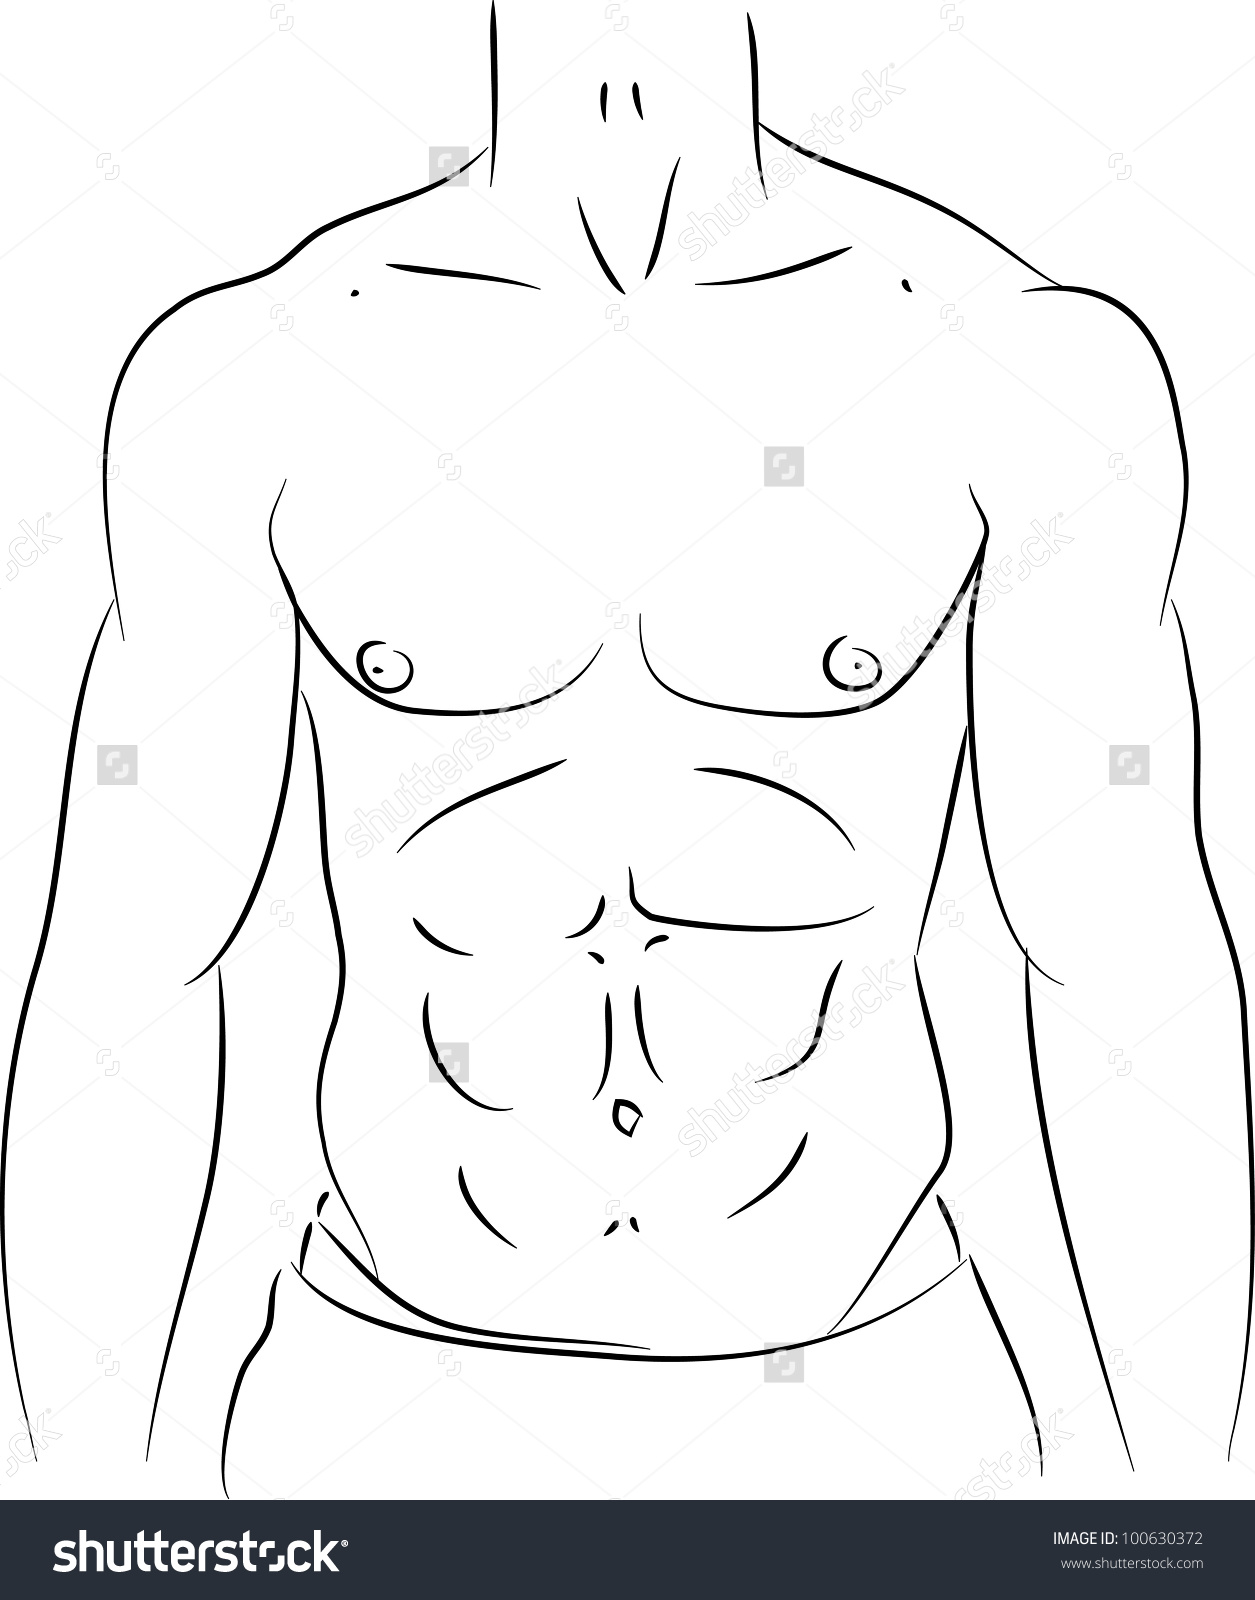 Six clipartfest save to. 6 pack abs clipart